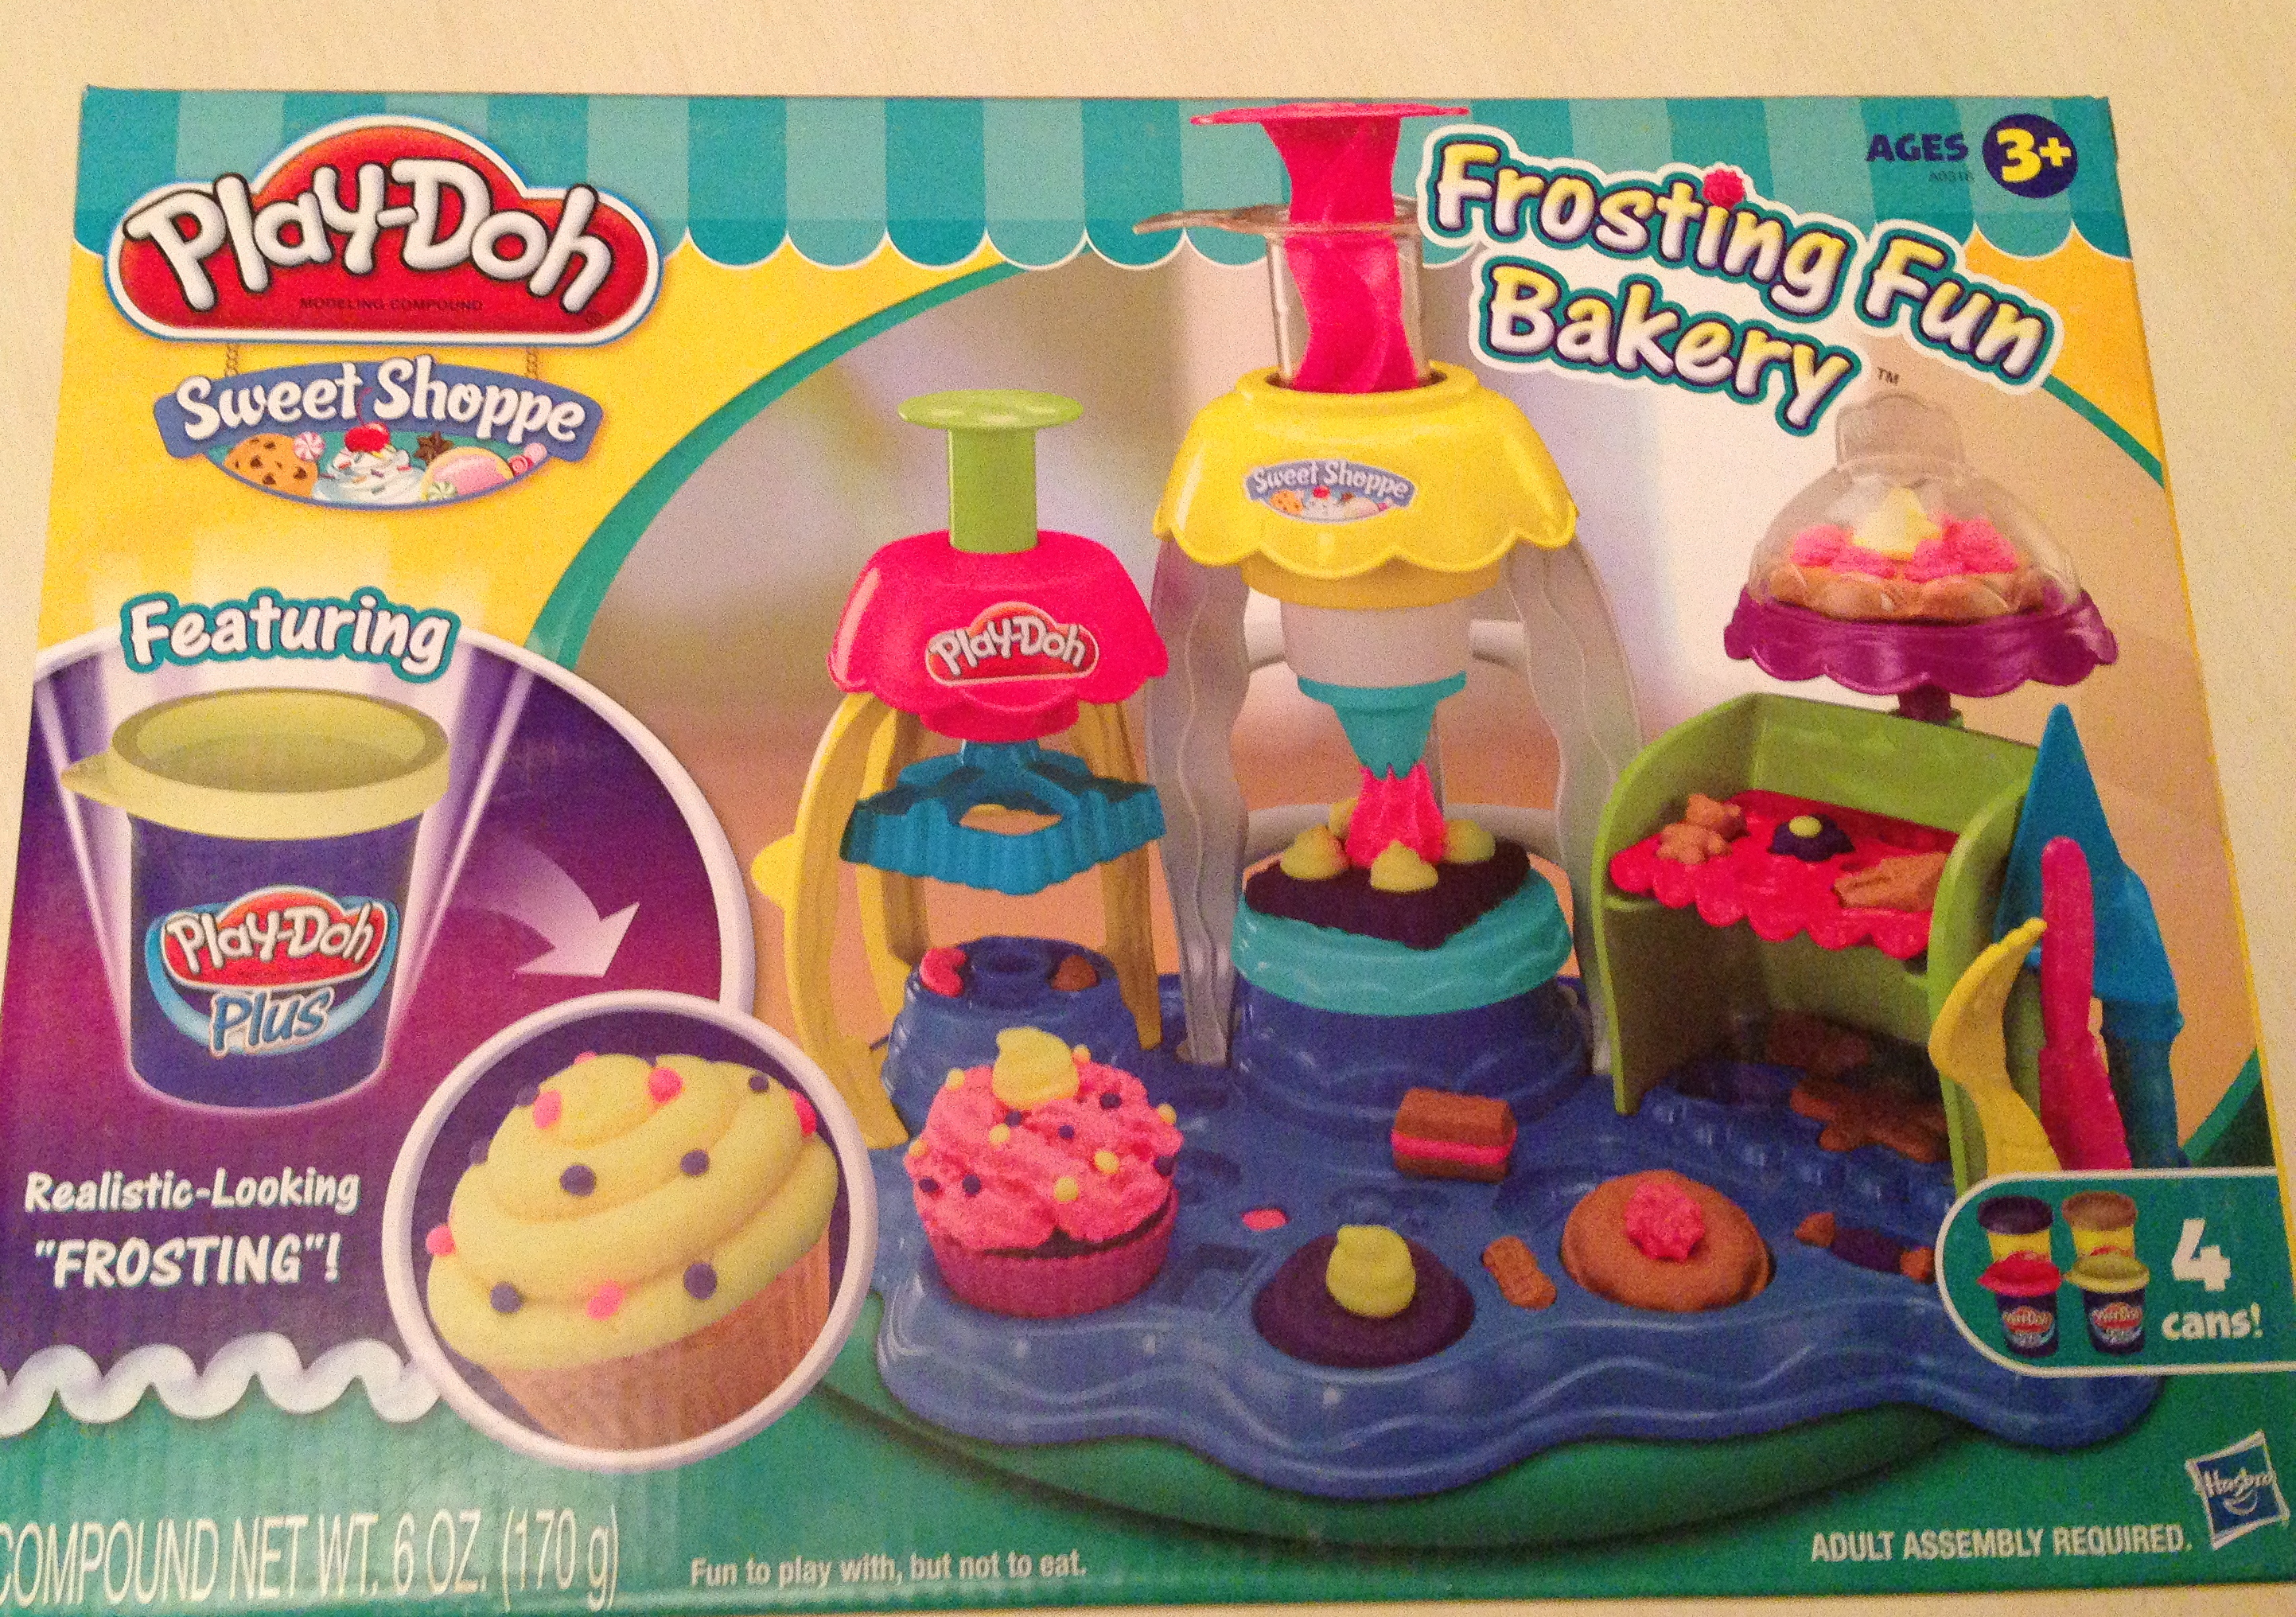 Play-Doh Sweet Shoppe from Hasbro